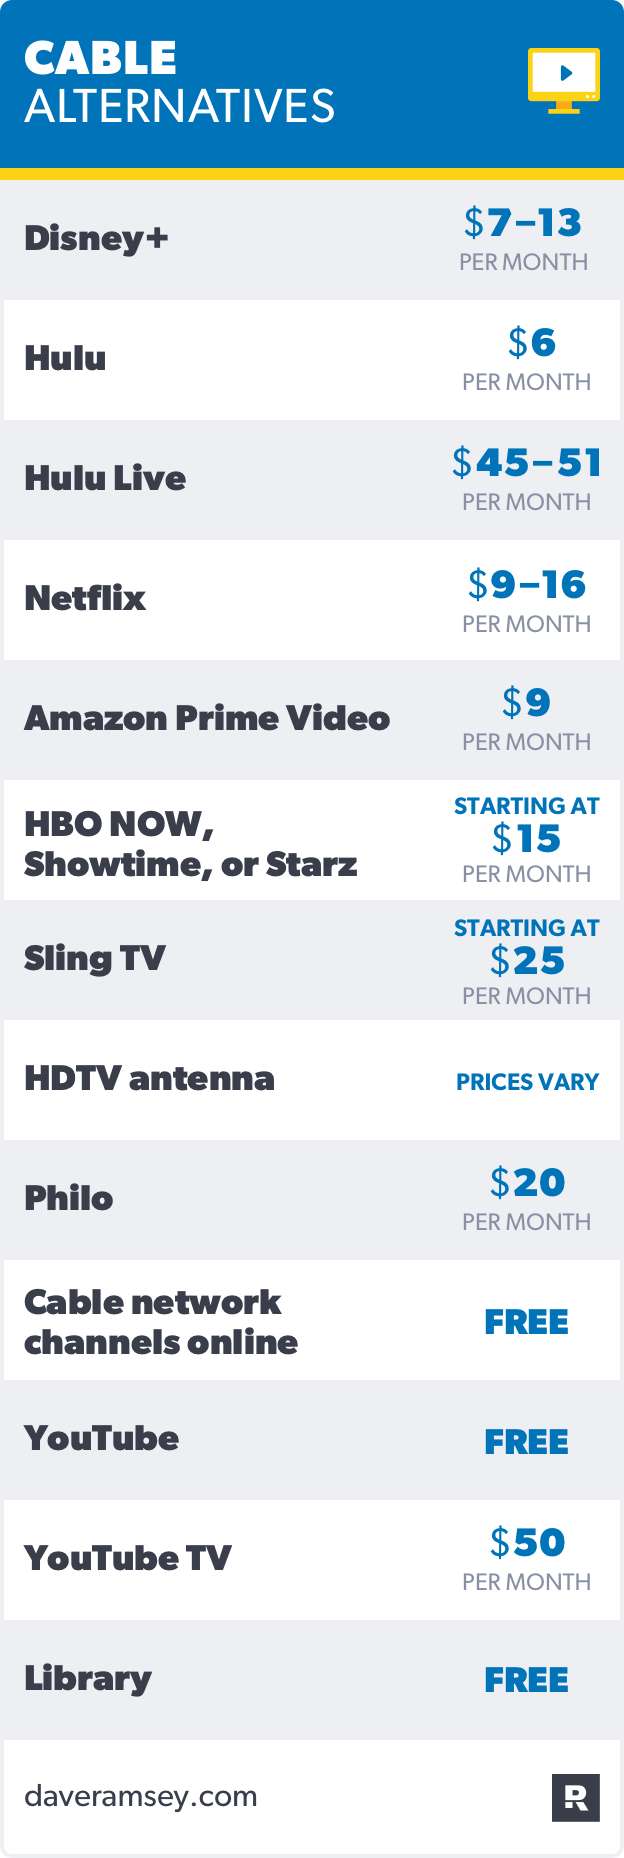 There are cable alternatives